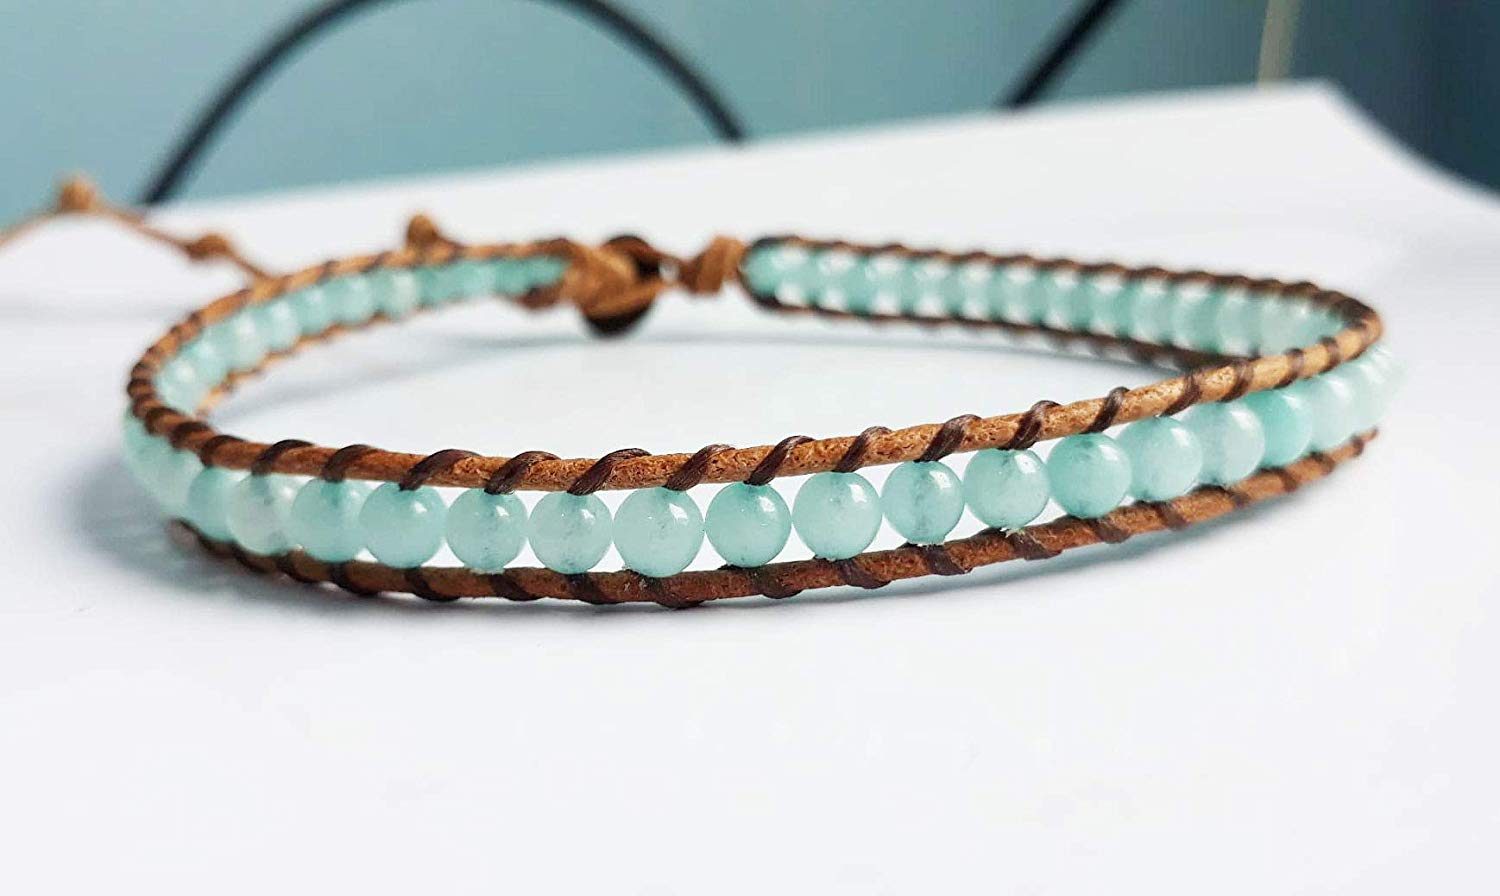 Stone anklets amazonite anklets leather anklets men anklets women anklets friendship anklets gift anklets fashion anklets